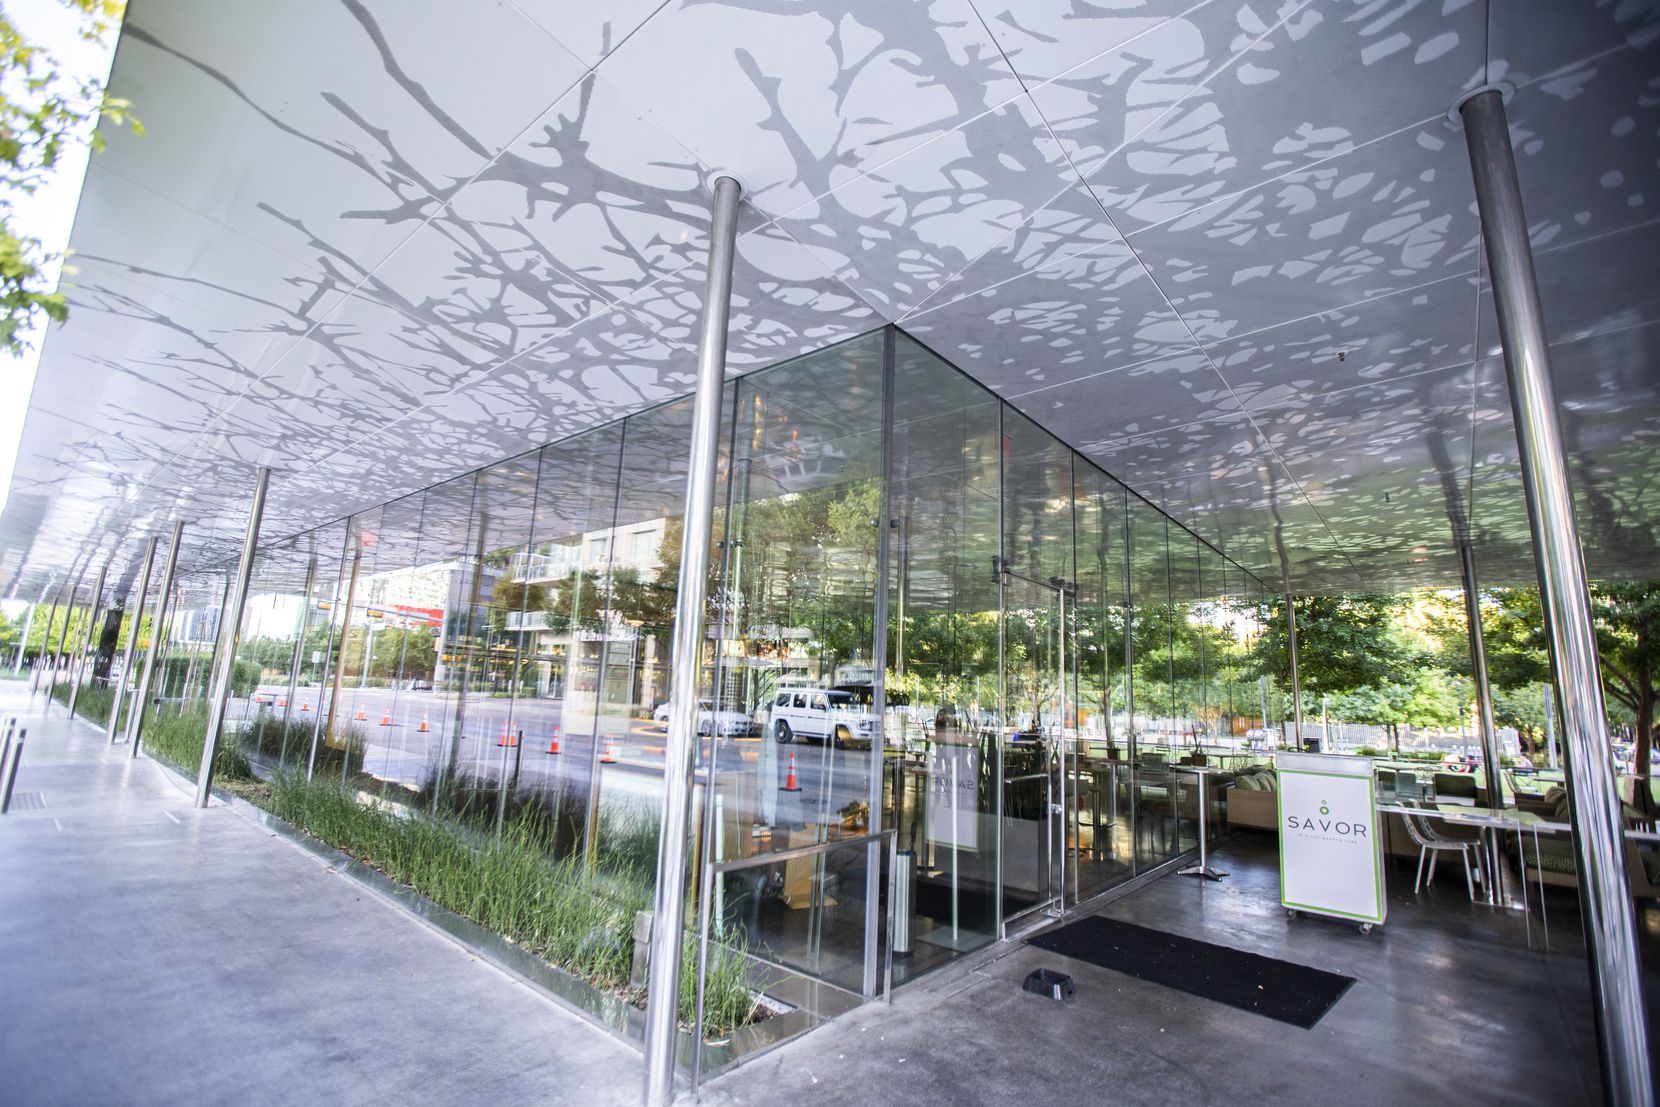 """The restaurant at Klyde Warren Park currently sits empty, after it operated as a high-end restaurant named Savor for many years. Klyde Warren Park president Kit Sawers describes the glass-box restaurant as """"a lantern,"""" and she believes its new life as Mi Cocina will bring more visitors — and more money — to Klyde Warren Park."""